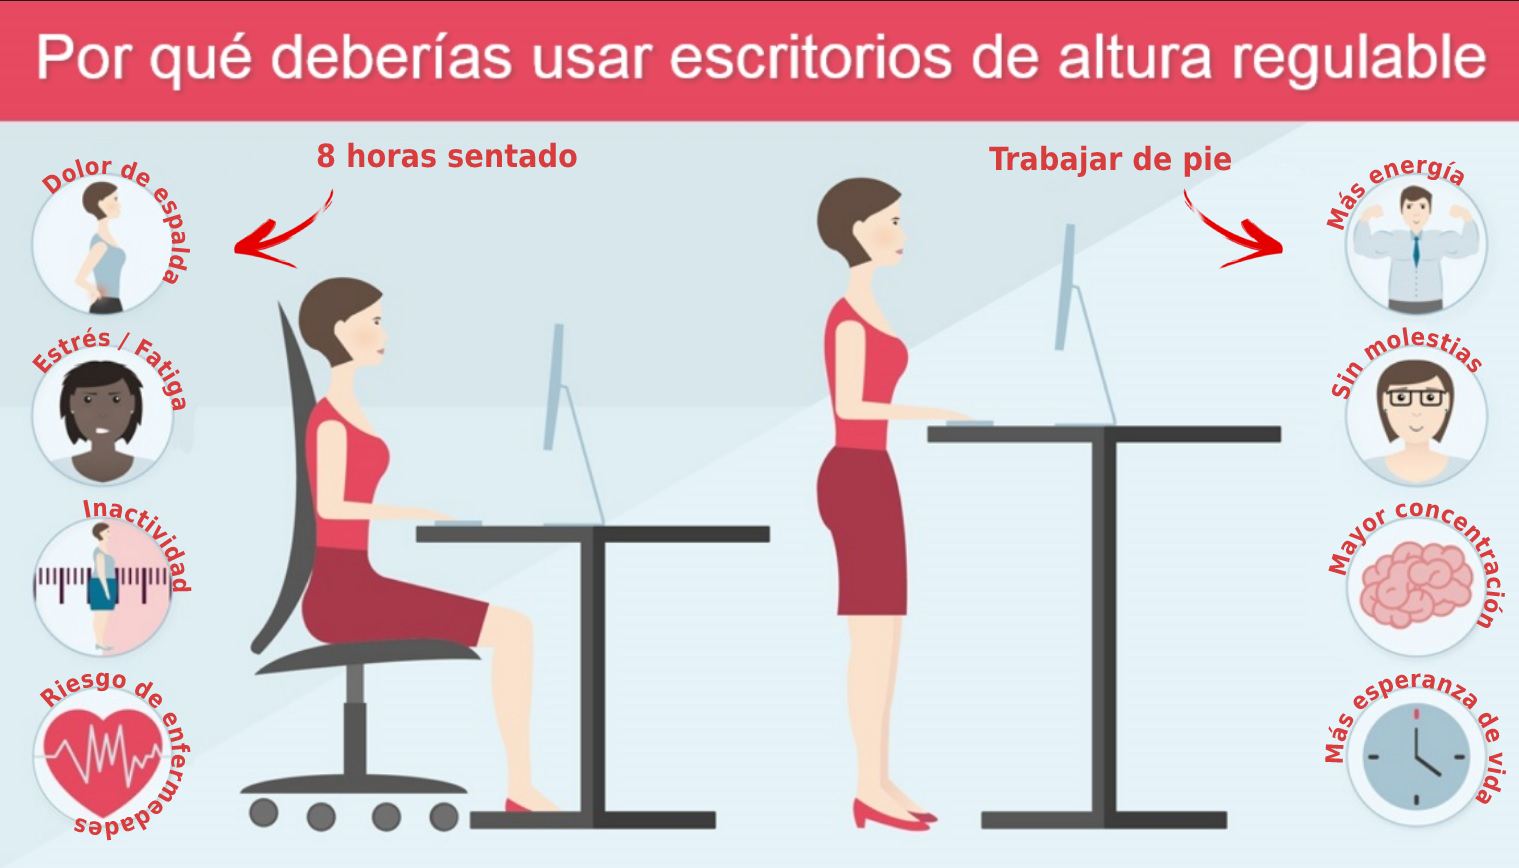 Beneficios del uso de escritorio de altura regulable